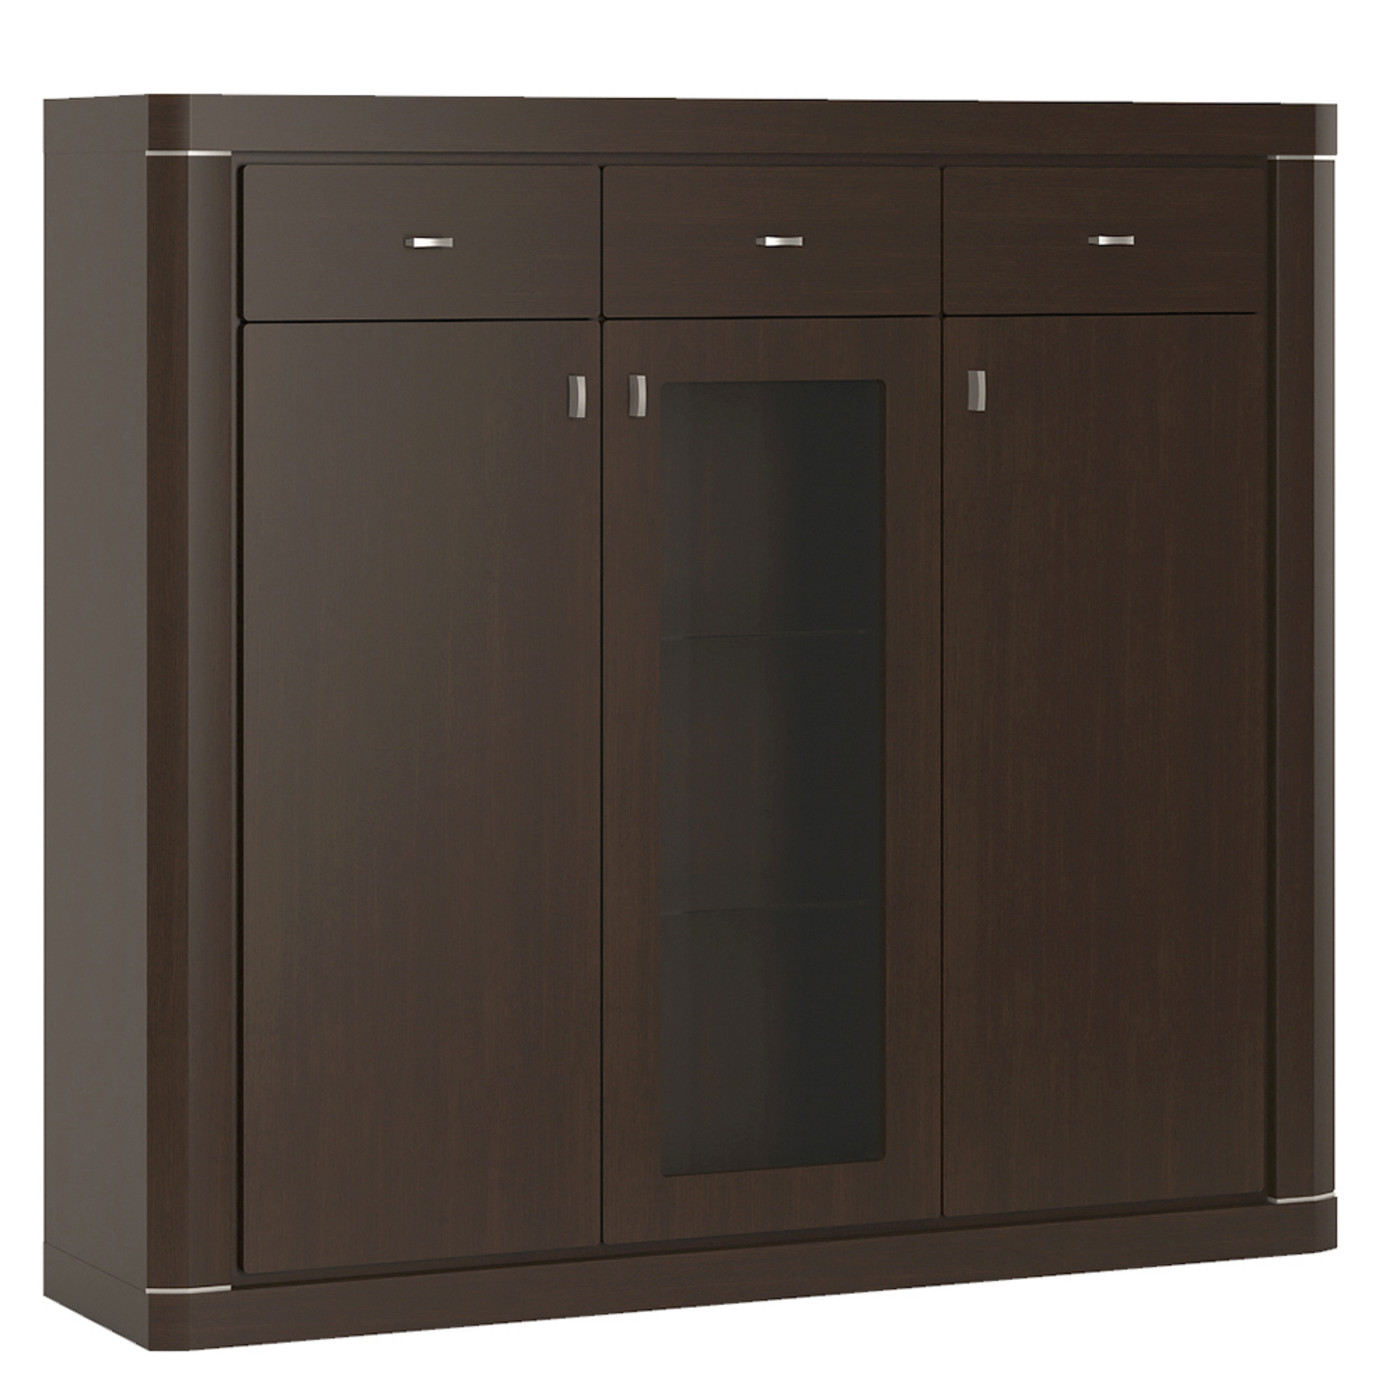 Kitchen Cabinet Doors Hull Camden 3 Door 3 Drawer Glazed Cabinet In Dark Wenge Sos